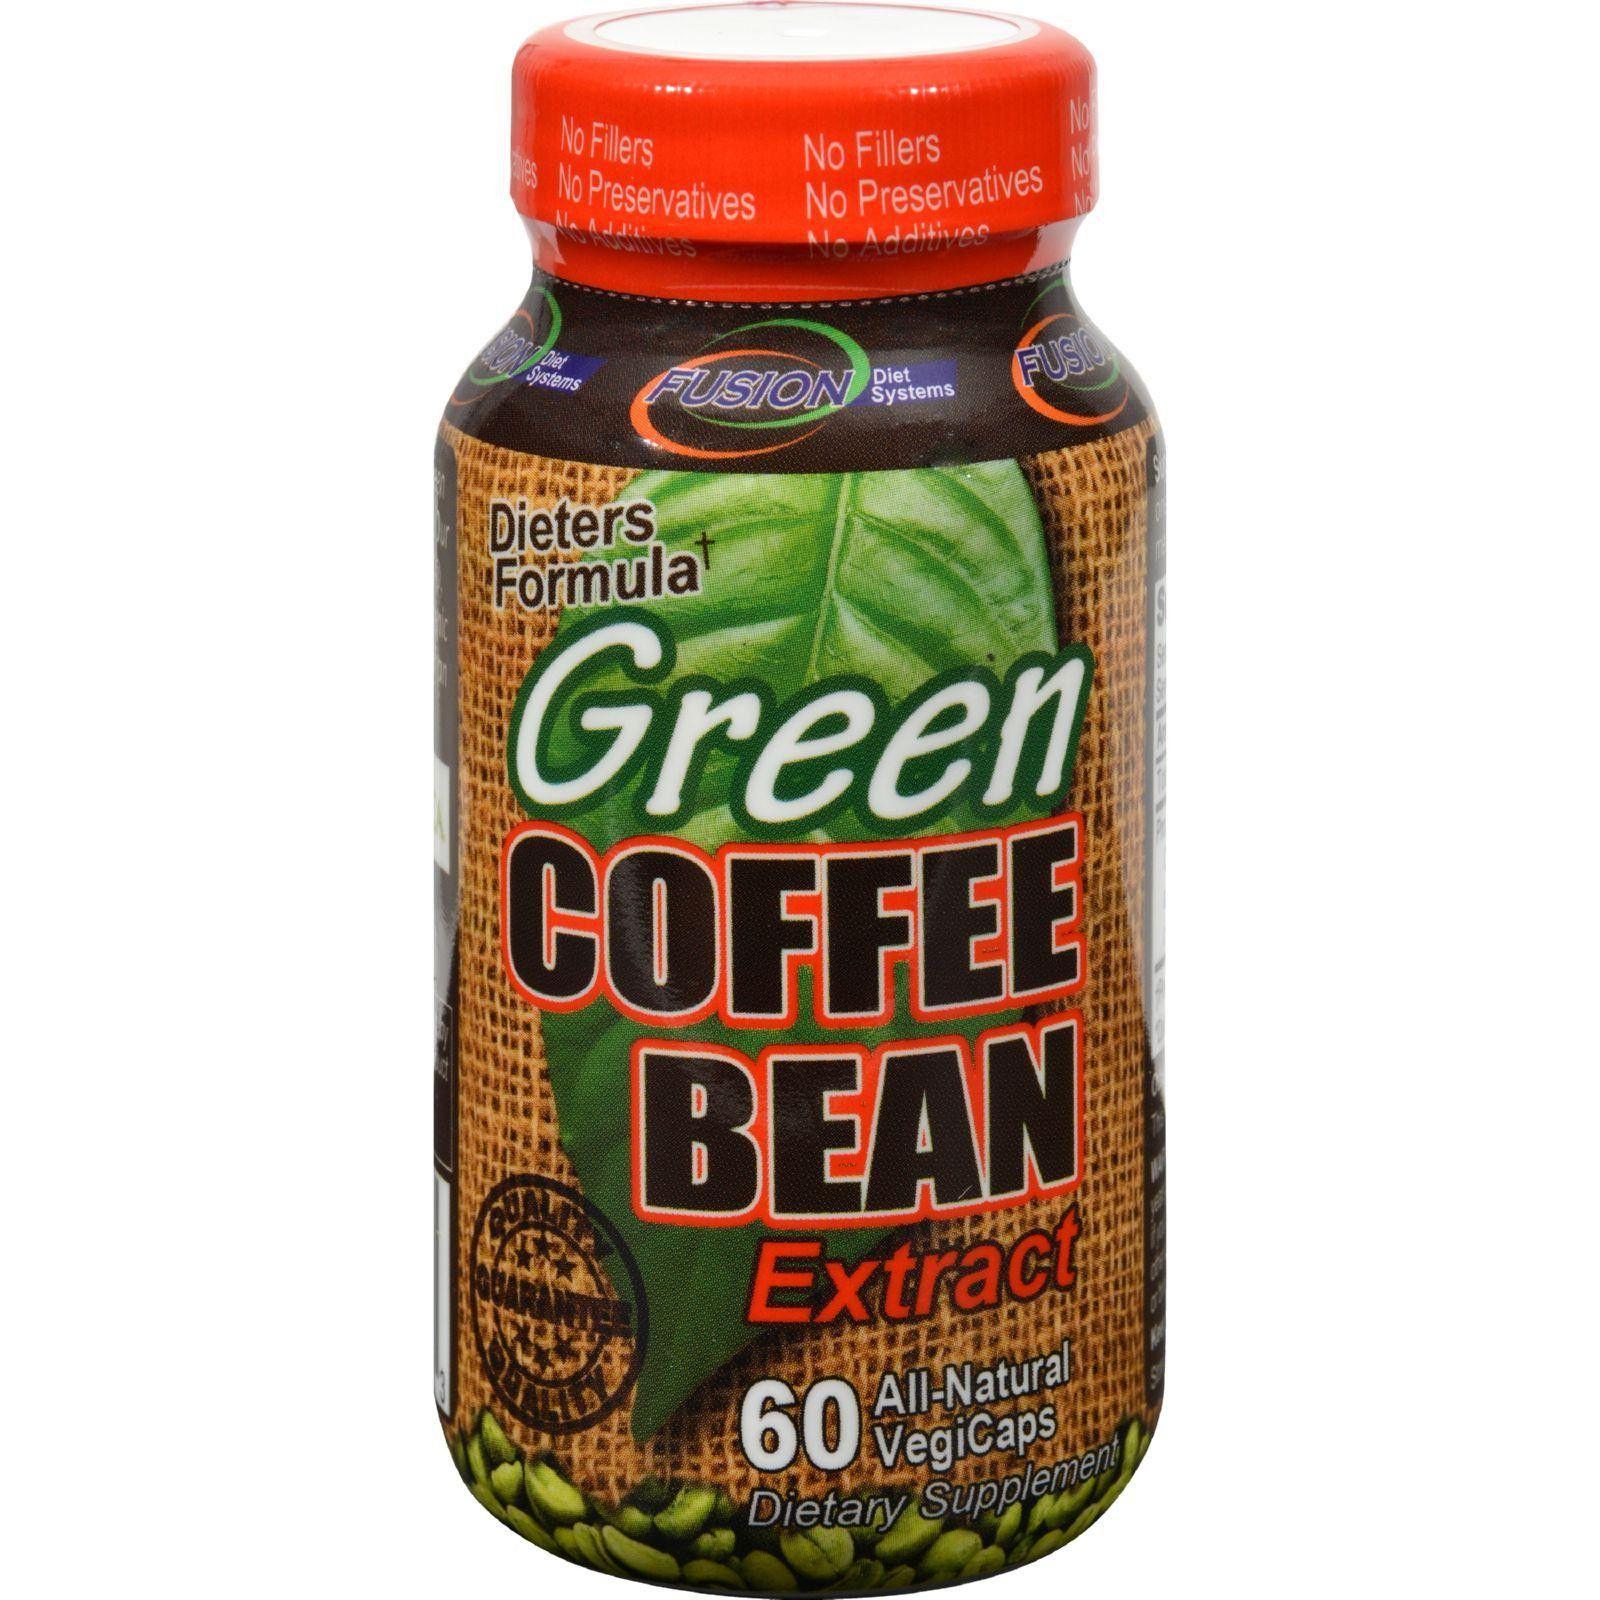 Fusion Diet Systems Green Coffee Bean Extract - 60 ...